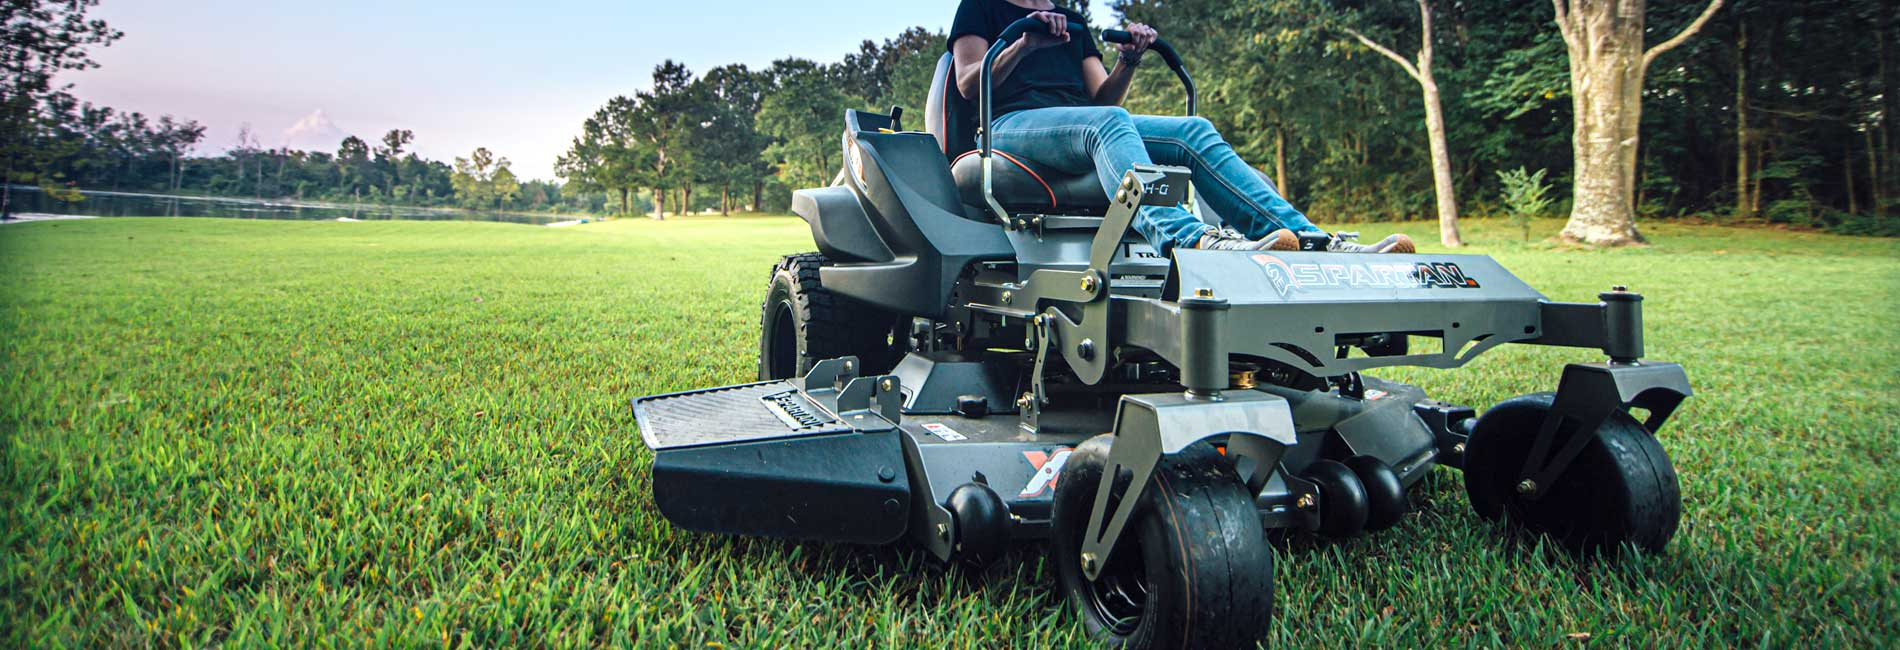 Worker on Riding Mower